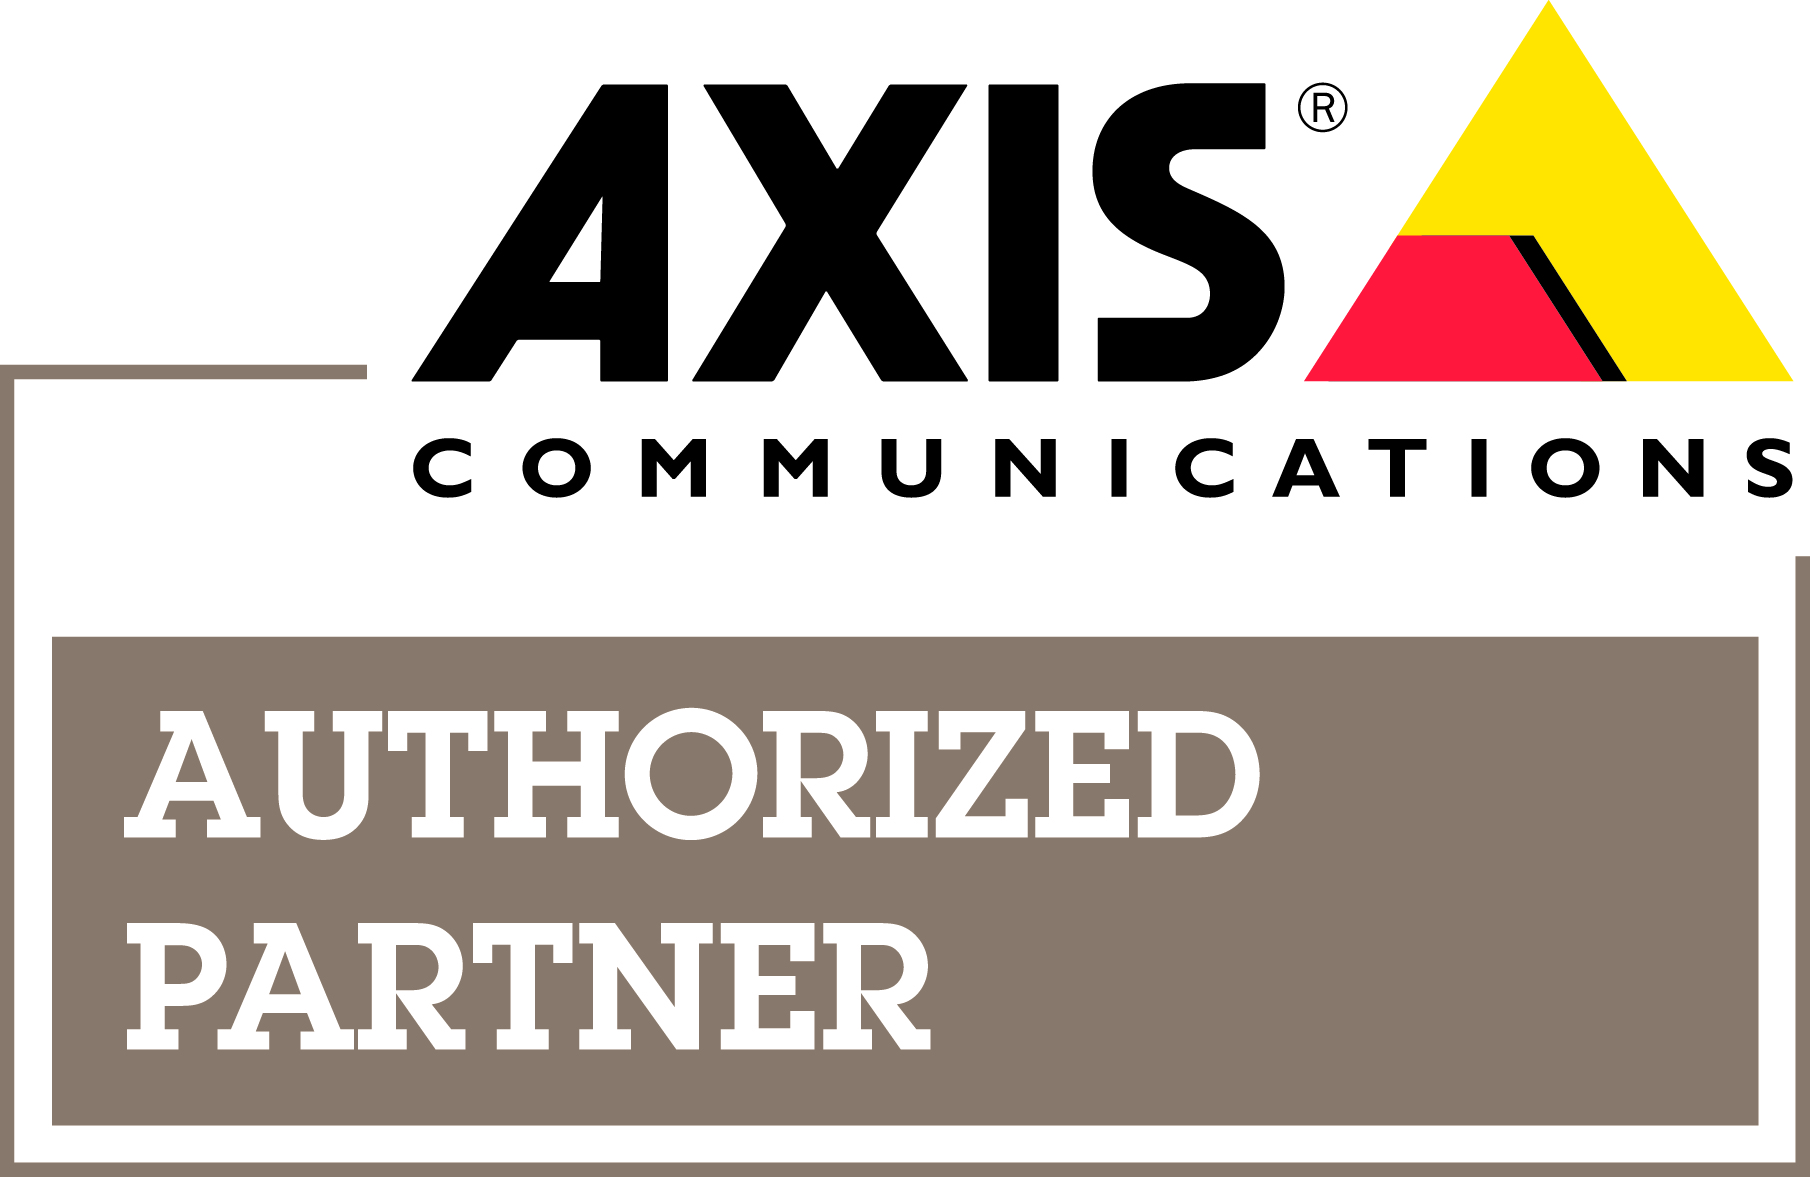 AXIS Authirzed Partner